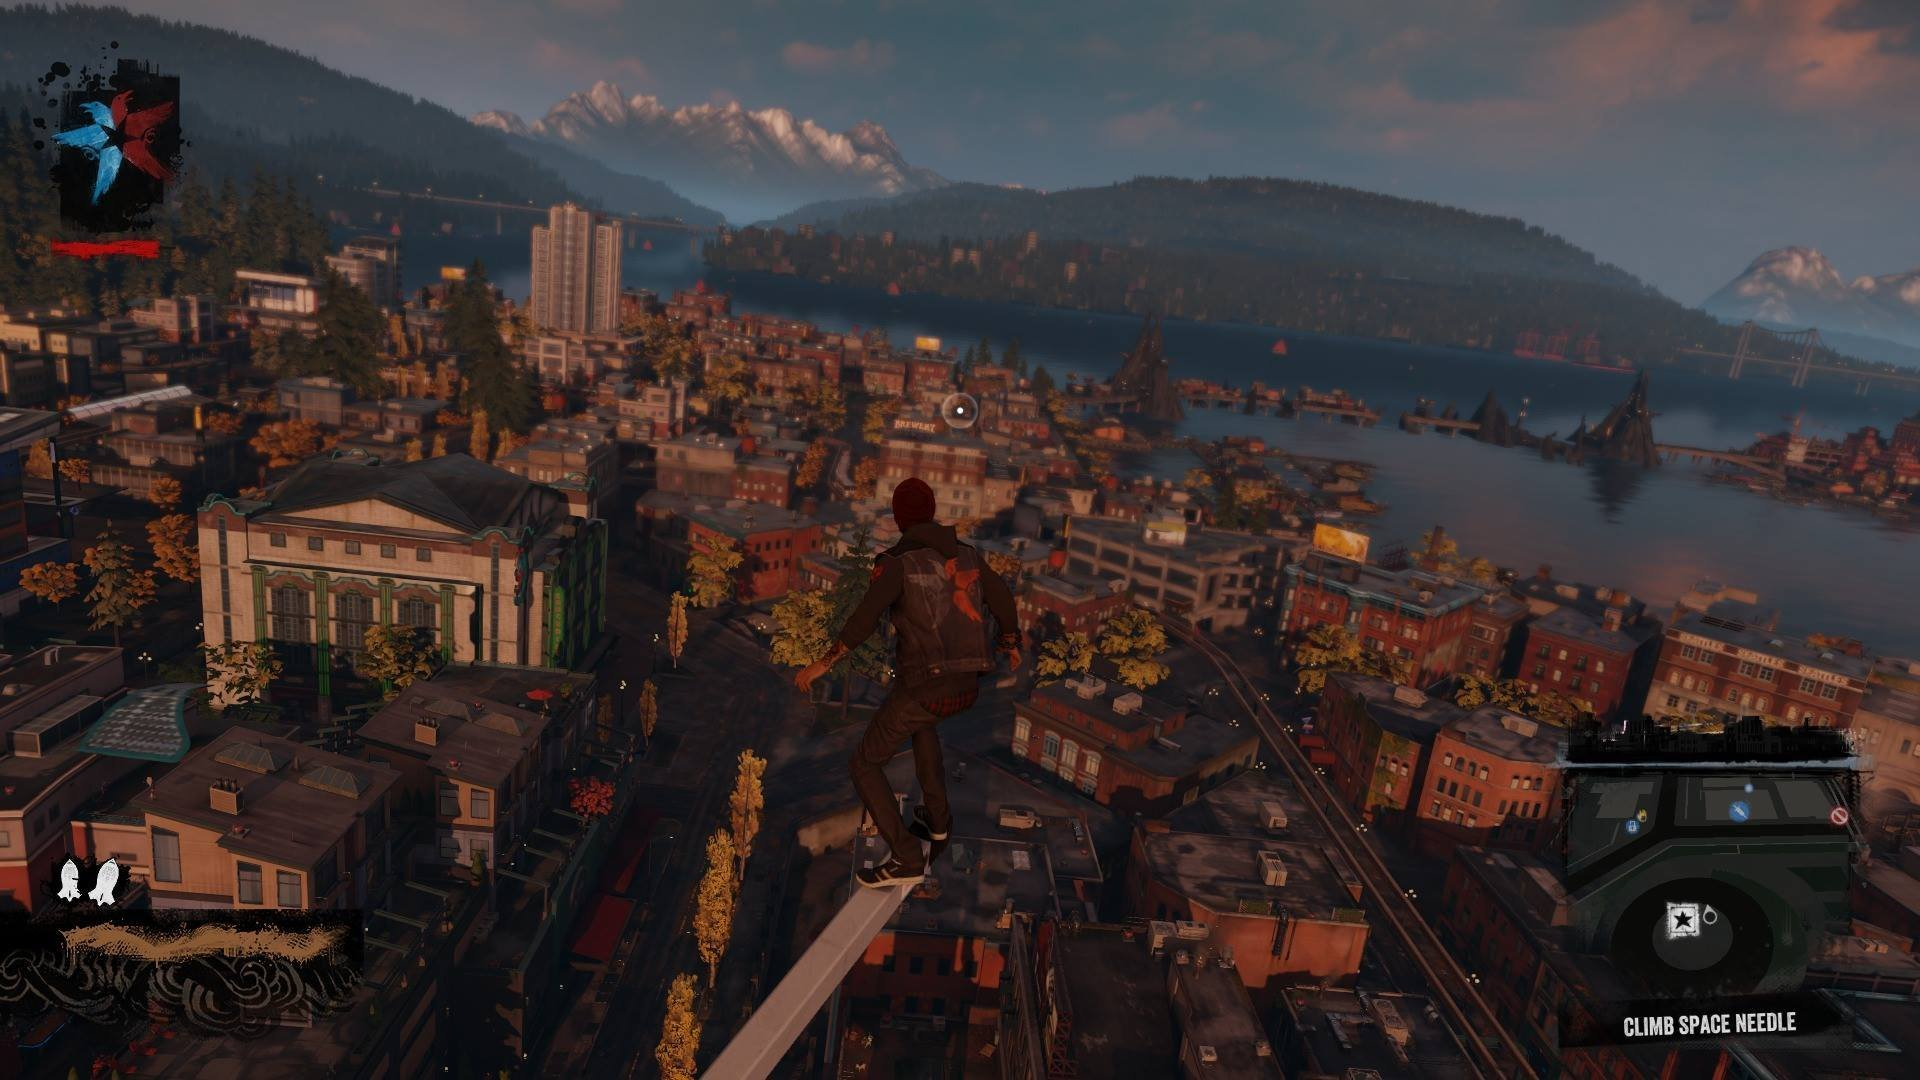 The World of inFamous: Second Son is Huge. : PS4 on driveclub map, the golden compass map, far cry map, jetpack joyride map, mad max map, bionic commando map, midnight club map, assassin's creed iii map, pac-man world 2 map, dynasty warriors 8 map, arkham city map, dragon age: inquisition map, transformers revenge of the fallen map, wild arms 2 map, l.a. noire map, dying light map, the legend of zelda map, midtown madness map, defense of the ancients map,